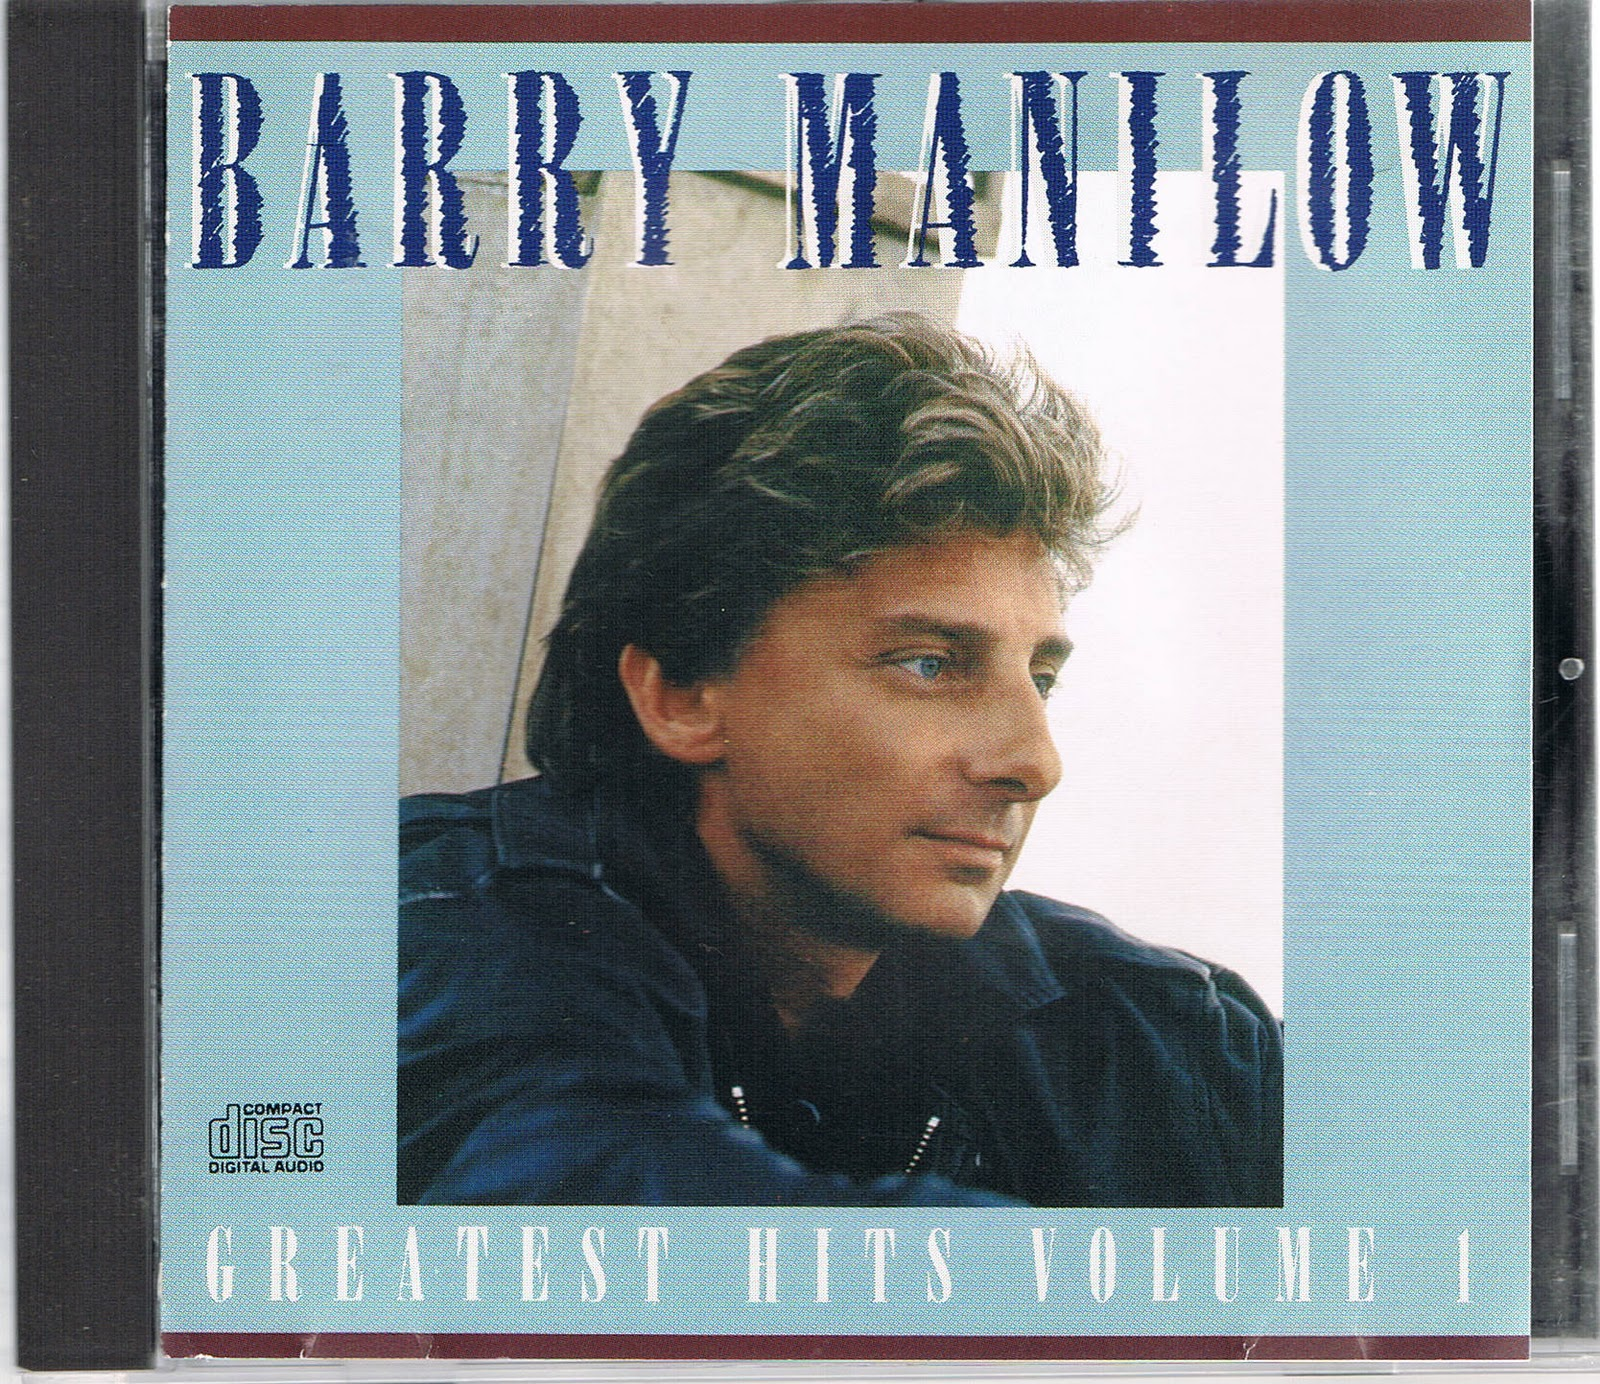 http://2.bp.blogspot.com/_h7xB0eh8o7Q/TO1syhKm8ZI/AAAAAAAACdQ/Tom5nvS66eE/s1600/barry_manilow_greatest_hits_volume_1_front.jpg